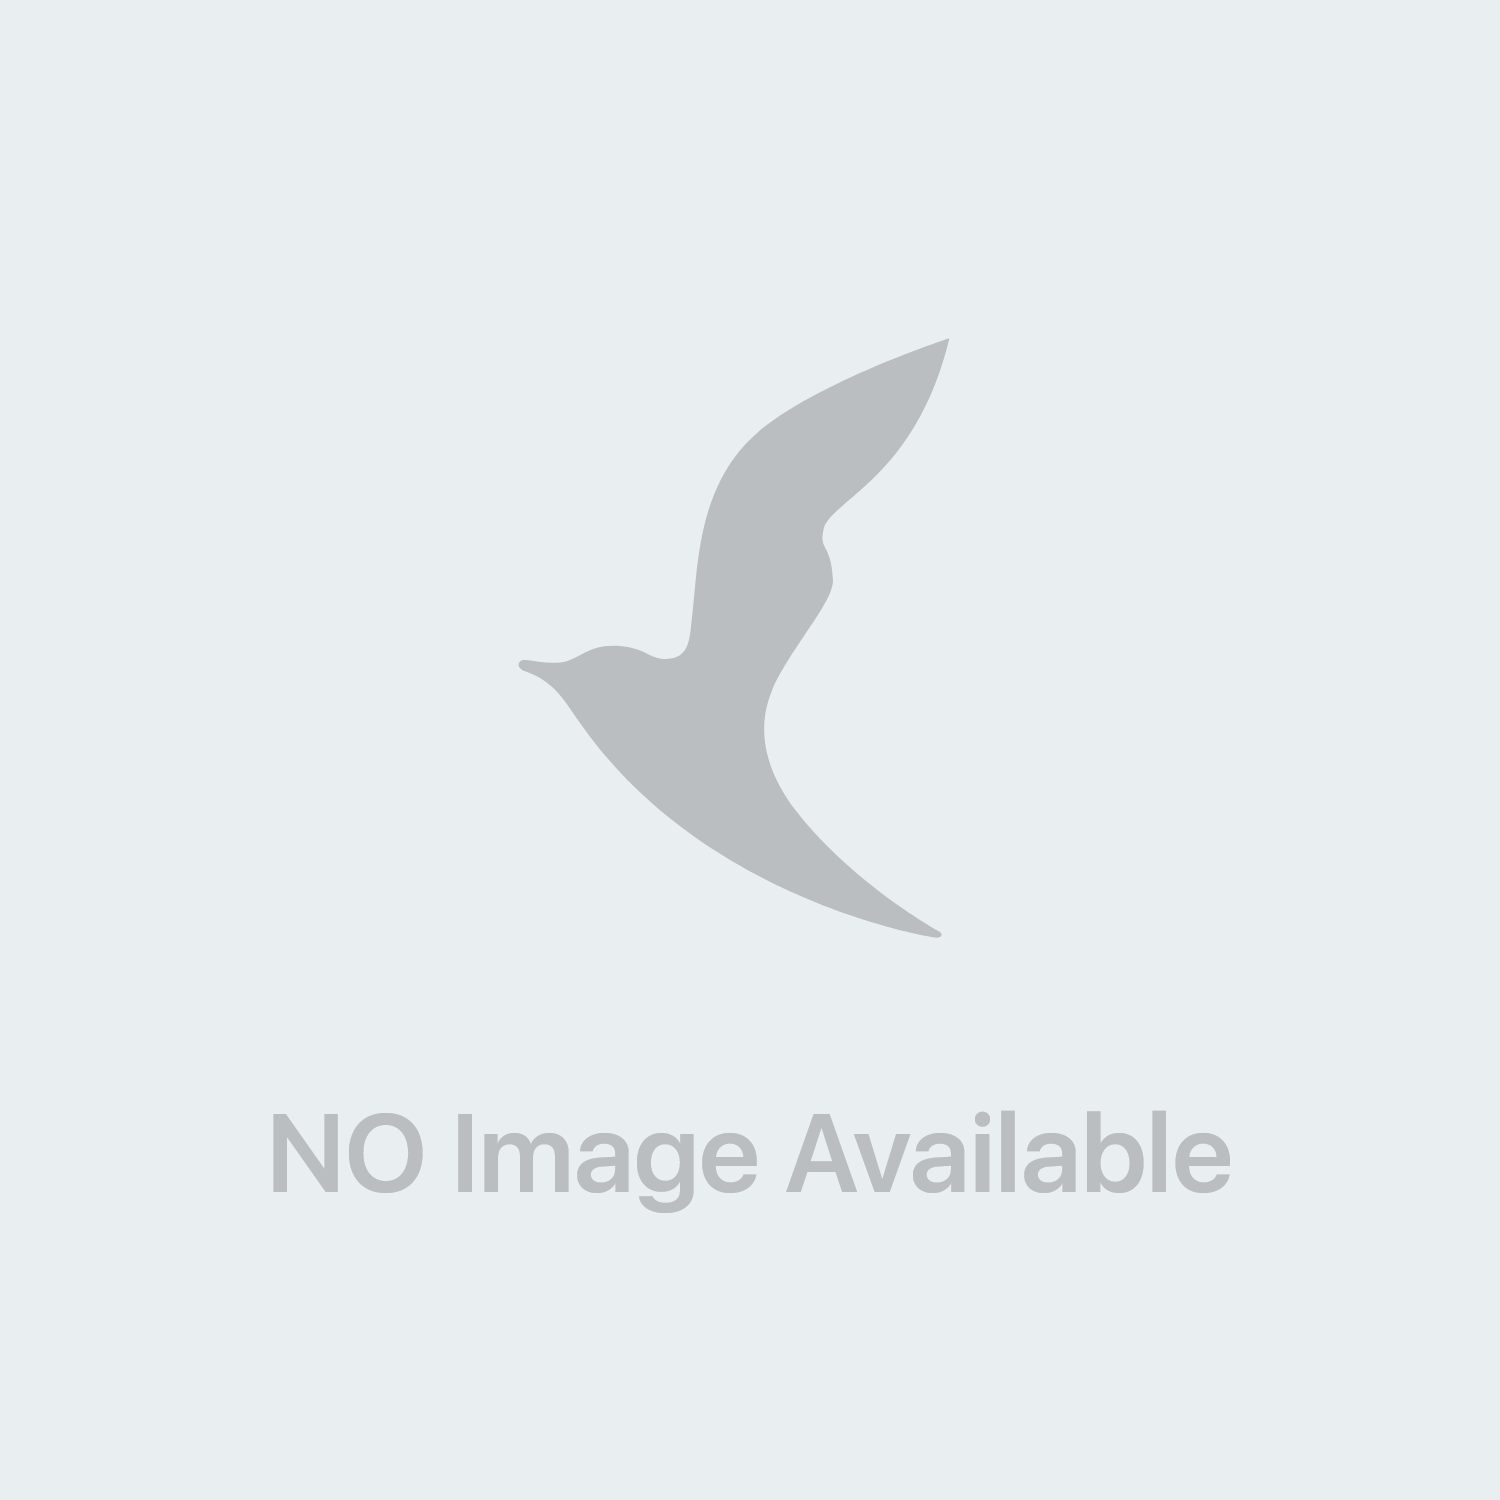 Korff Cure Make Up Ombretto in Crema Vasetto 4,5 g